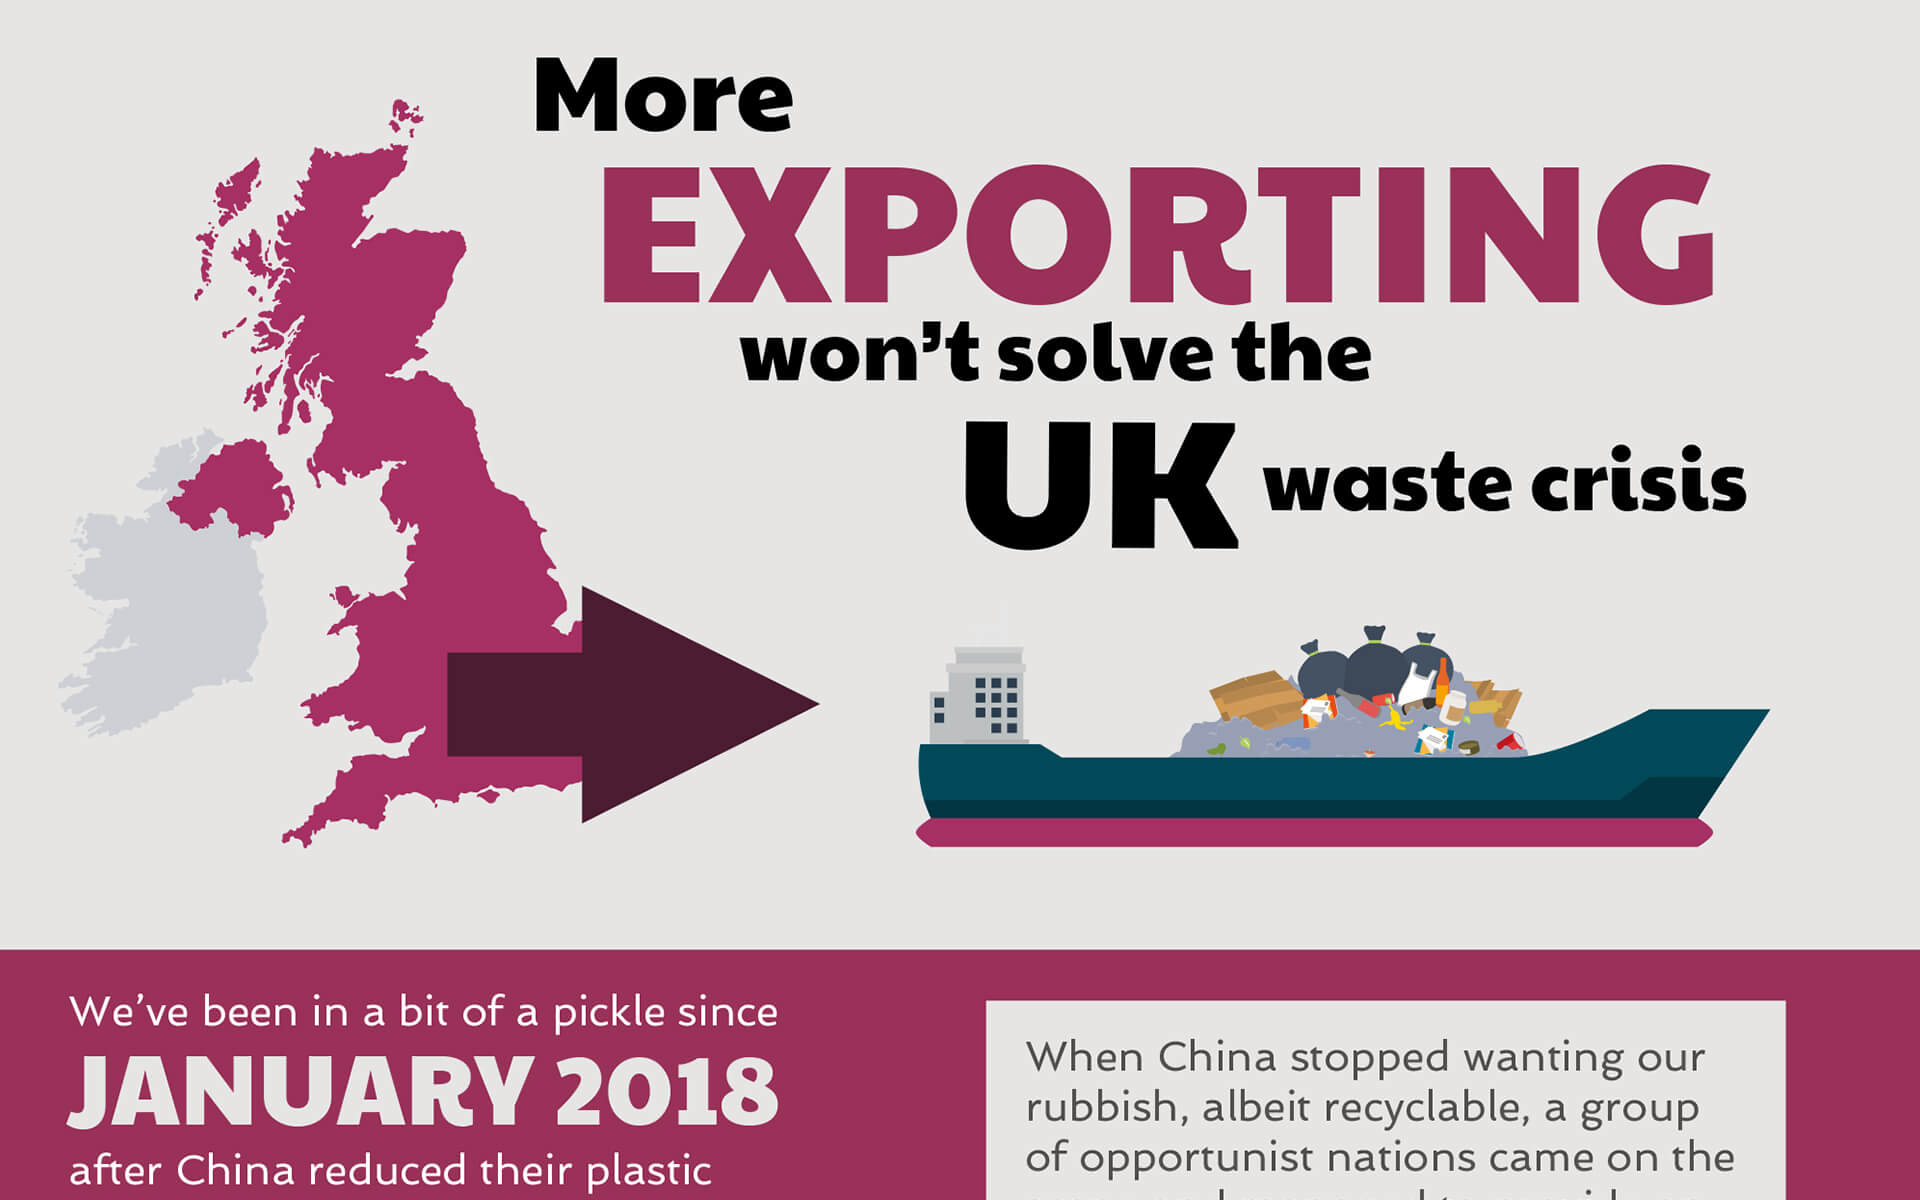 more-exporting-wont-solve-the-uk-waste-crisis